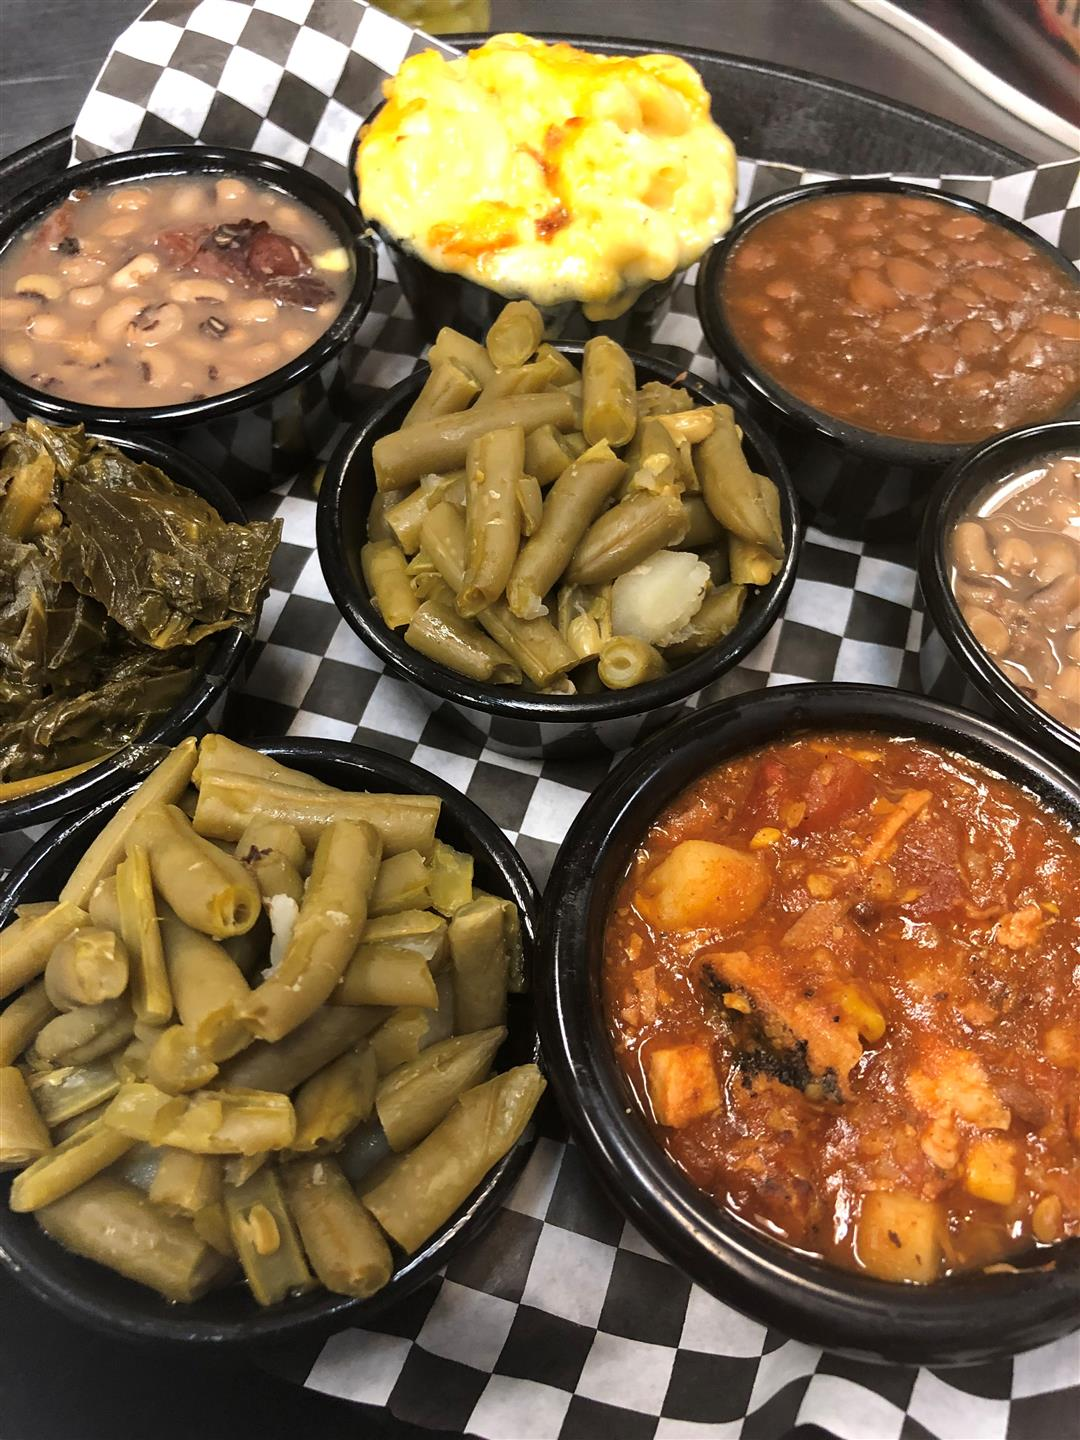 gren beans, collard greens, baked beans, black ayed peas, mac and cheese and other various sides all in little dishes